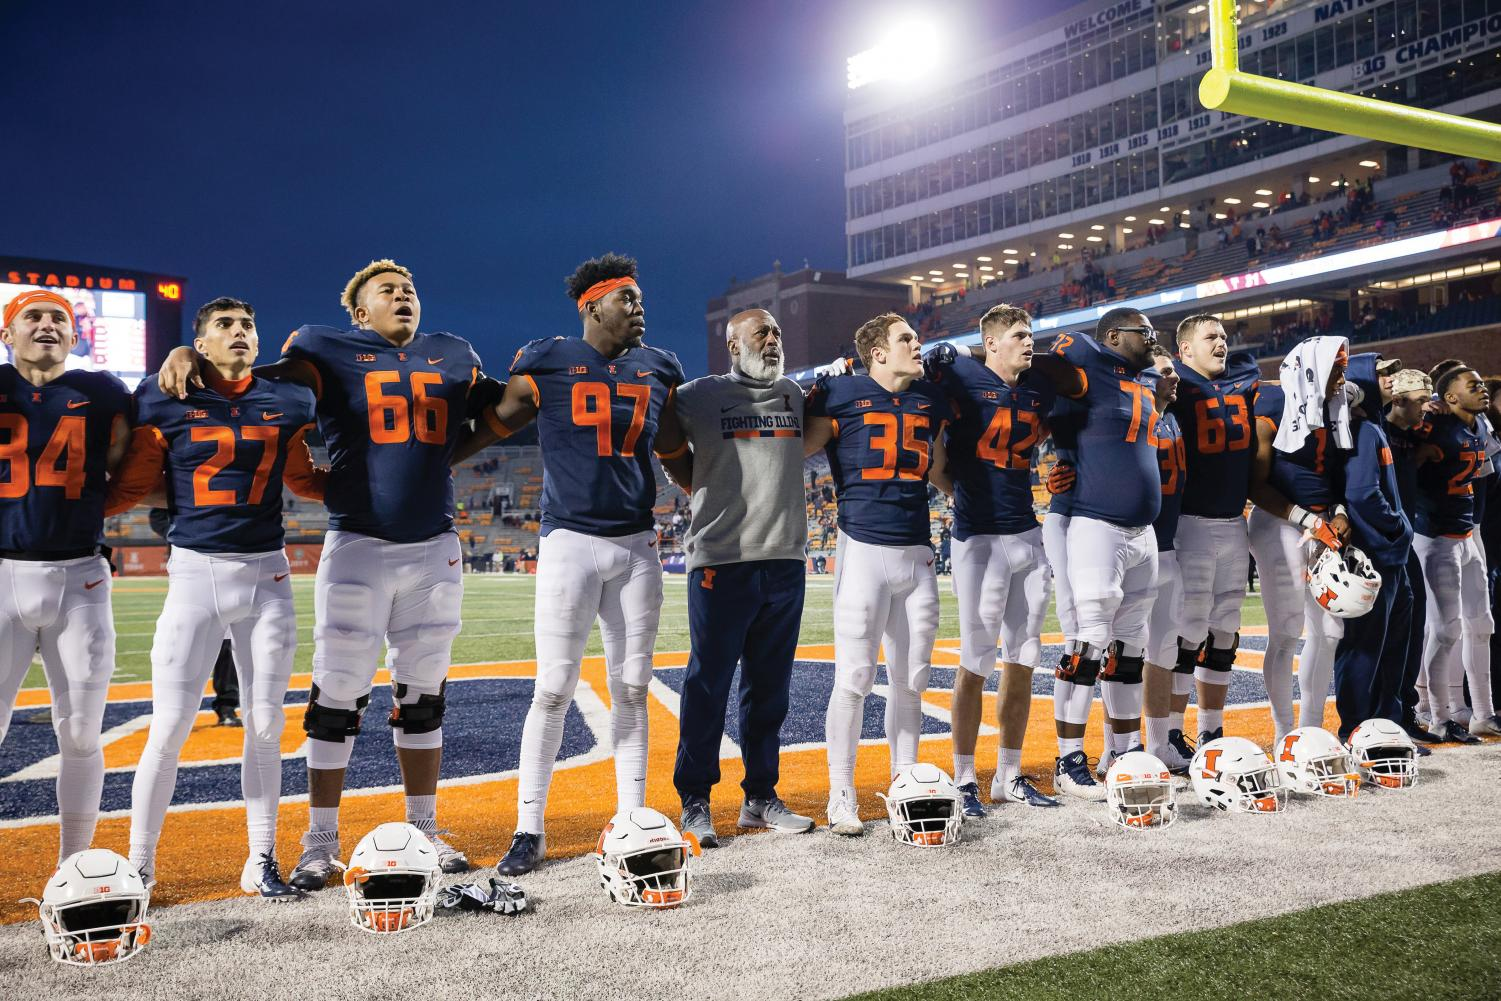 """Illinois head coach Lovie Smith sings """"Hail to the Orange"""" with his team after the game against Minnesota at Memorial Stadium on Saturday. The Illini won 55-31."""